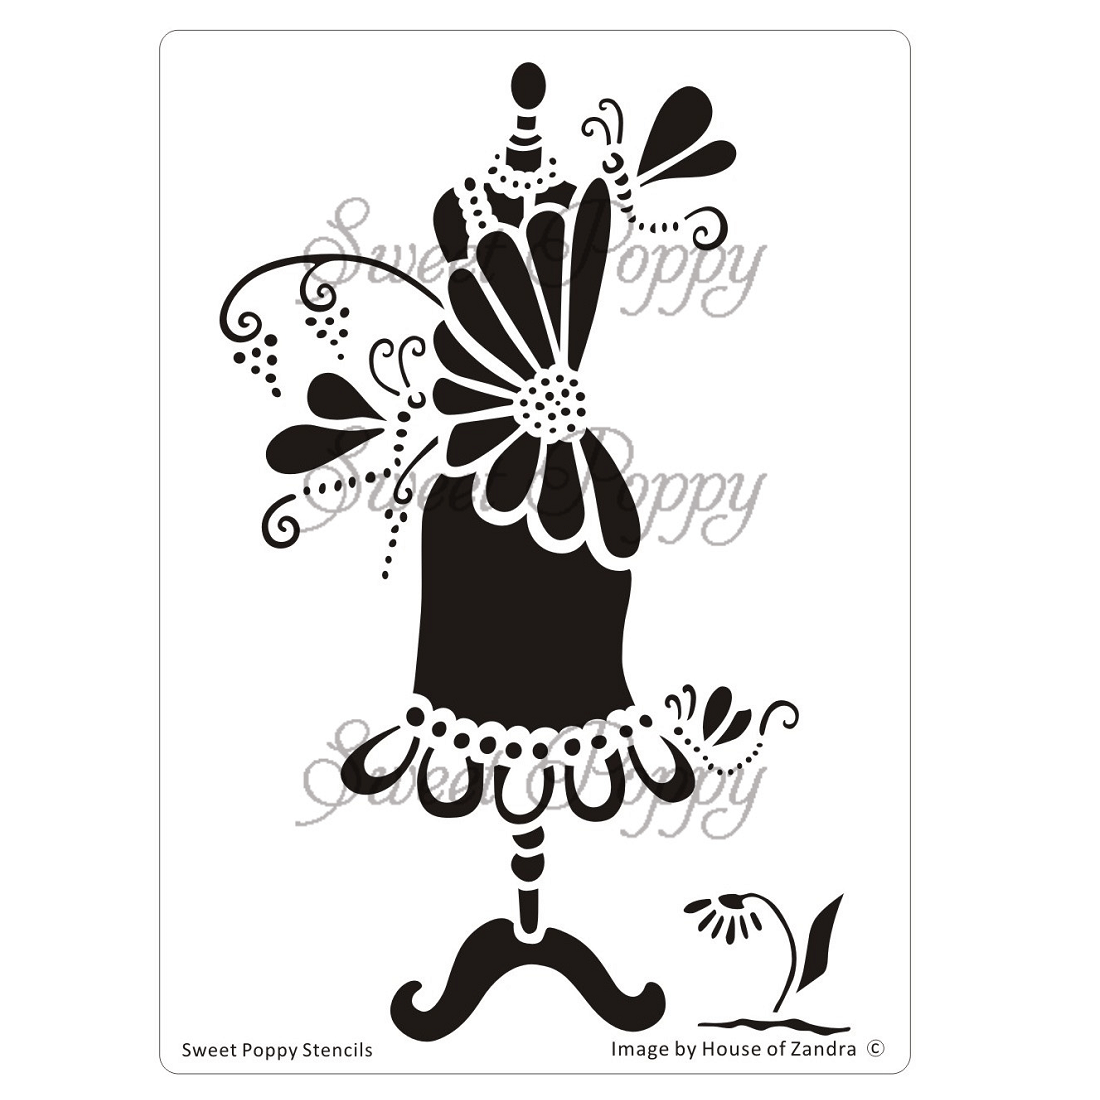 Sweet Poppy Stencil: Dress 5 – Daisy